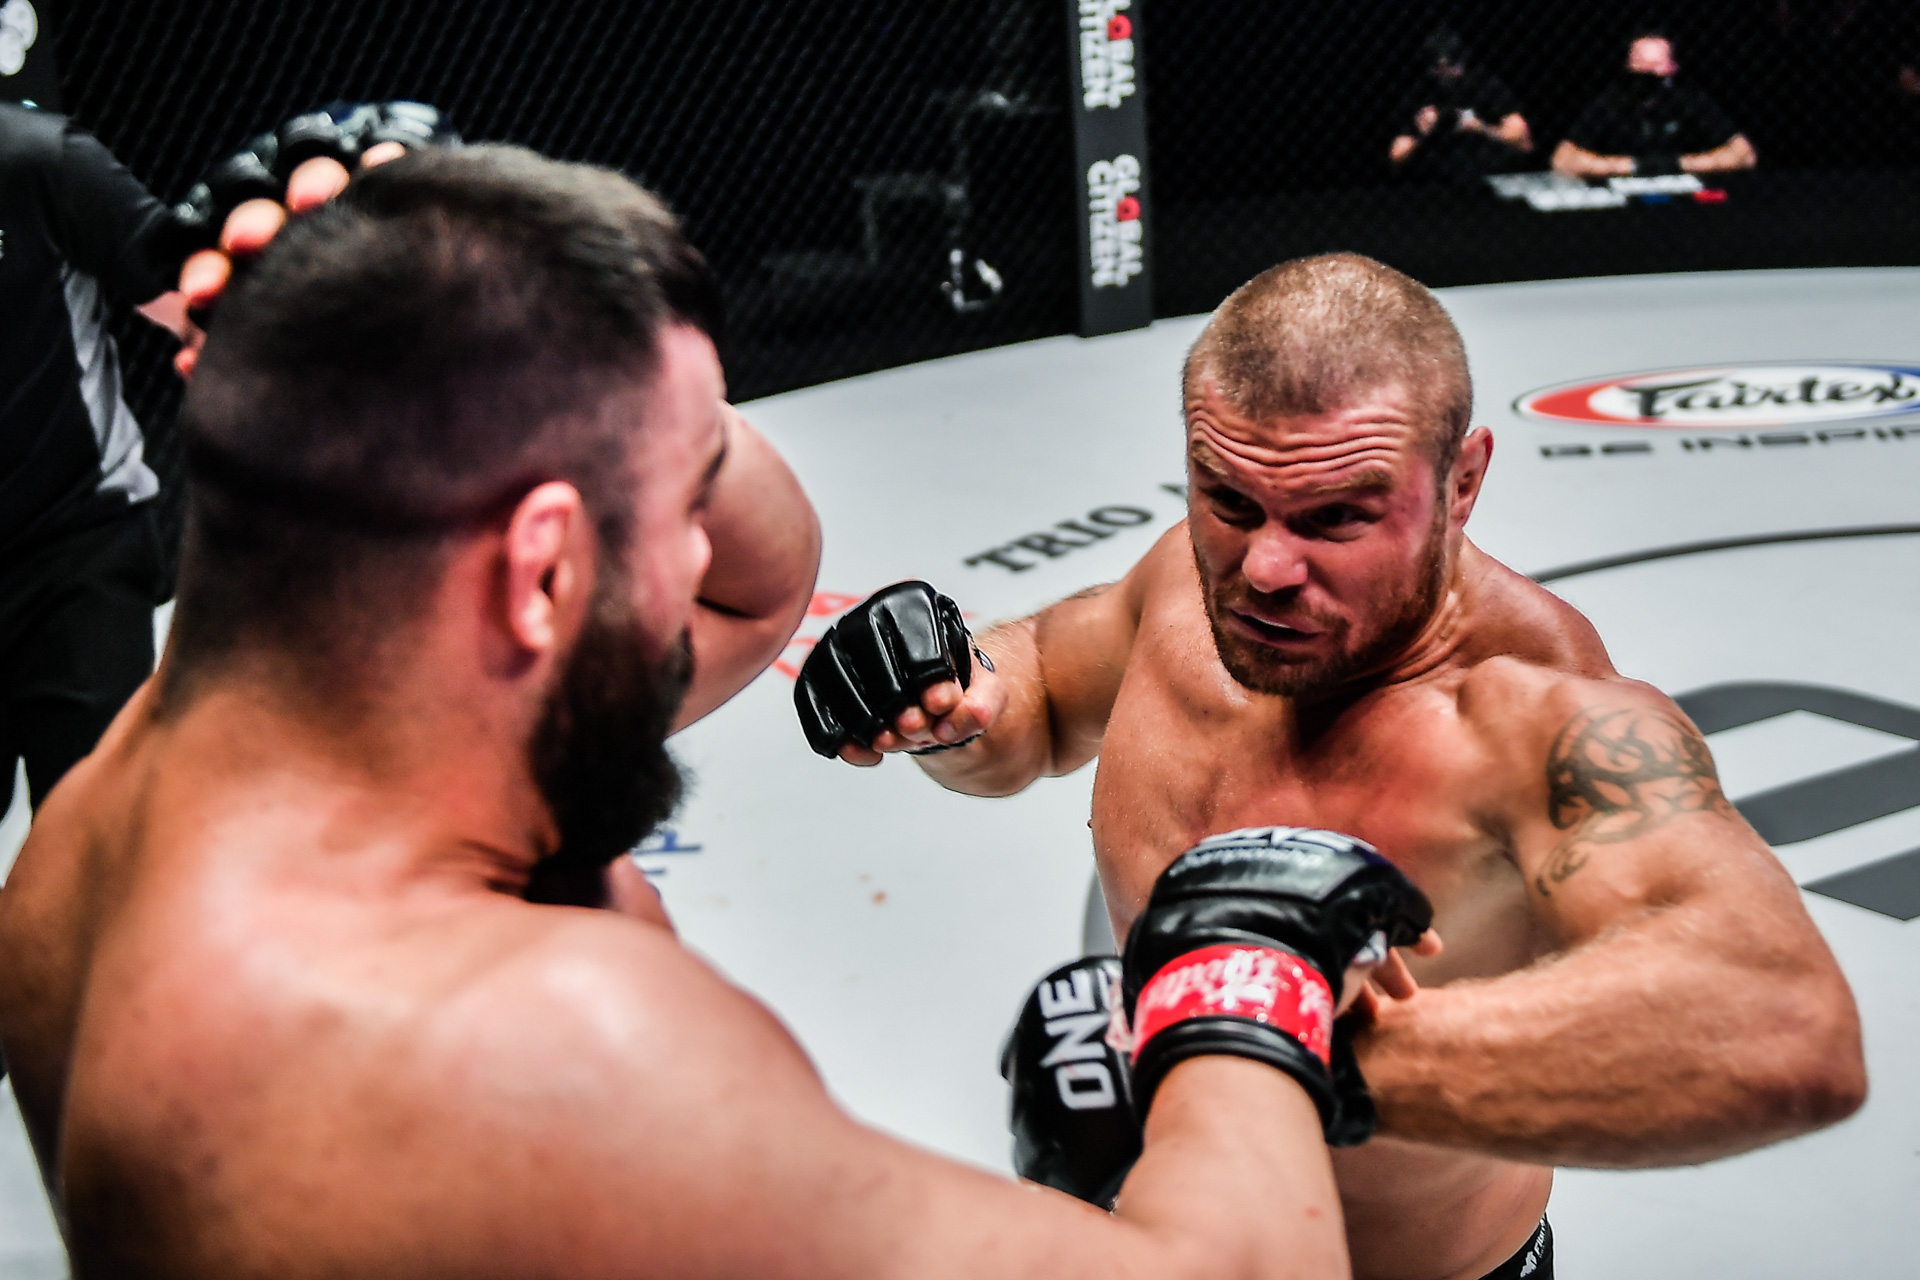 Pictures of the MMA fight between Anatoly Malykhin and Amir Aliakbari from ONE: REVOLUTION